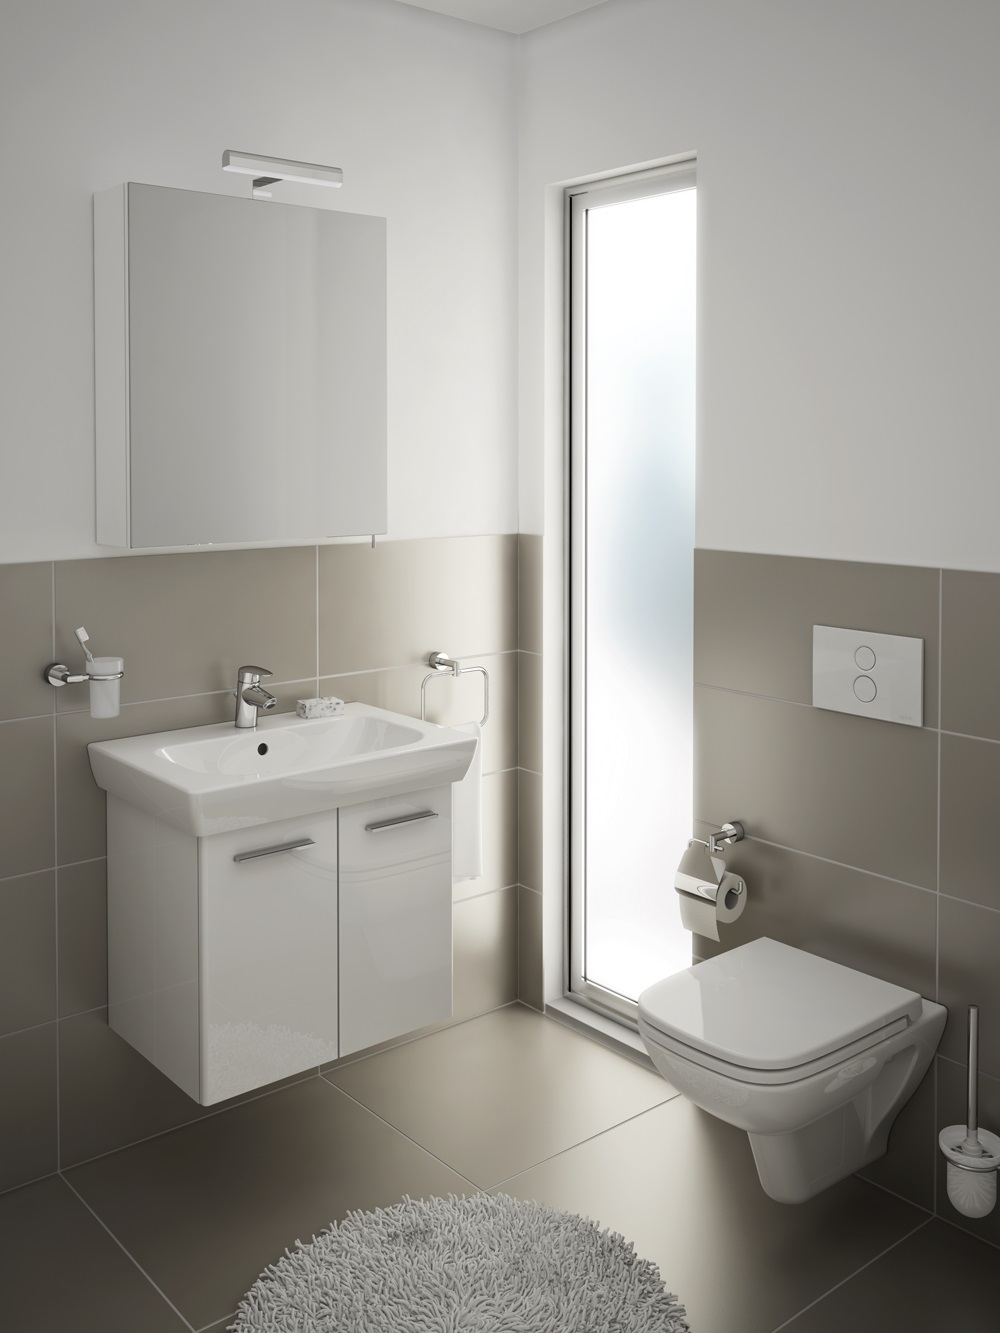 Discover En Suite Bathrooms At More Bathrooms Leeds